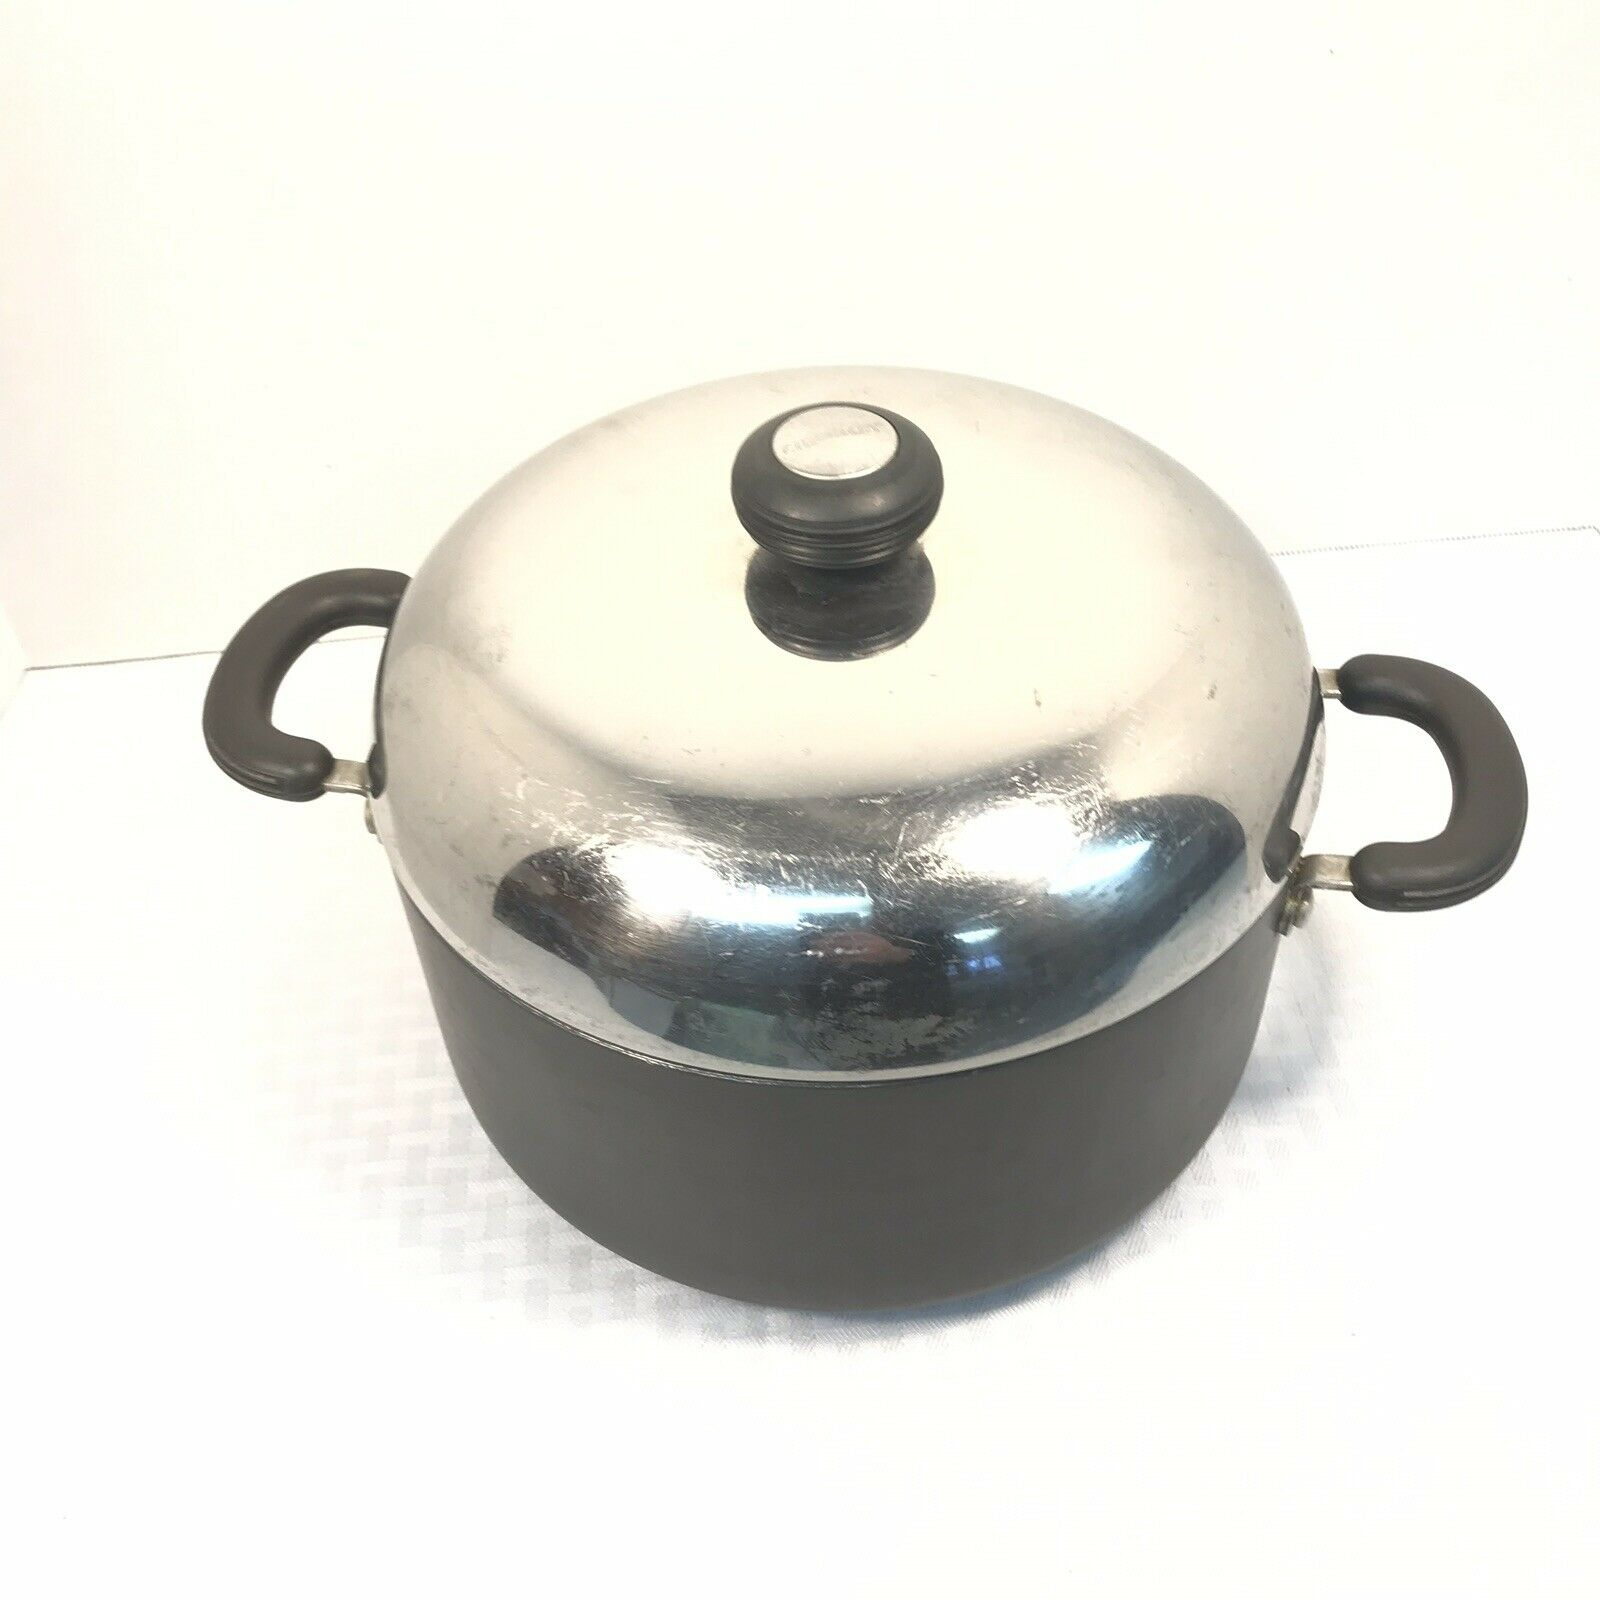 Circulon Hi-Low System Hardened Anazoid Dutch Oven 10 Qt Oven Safe Vintage Model